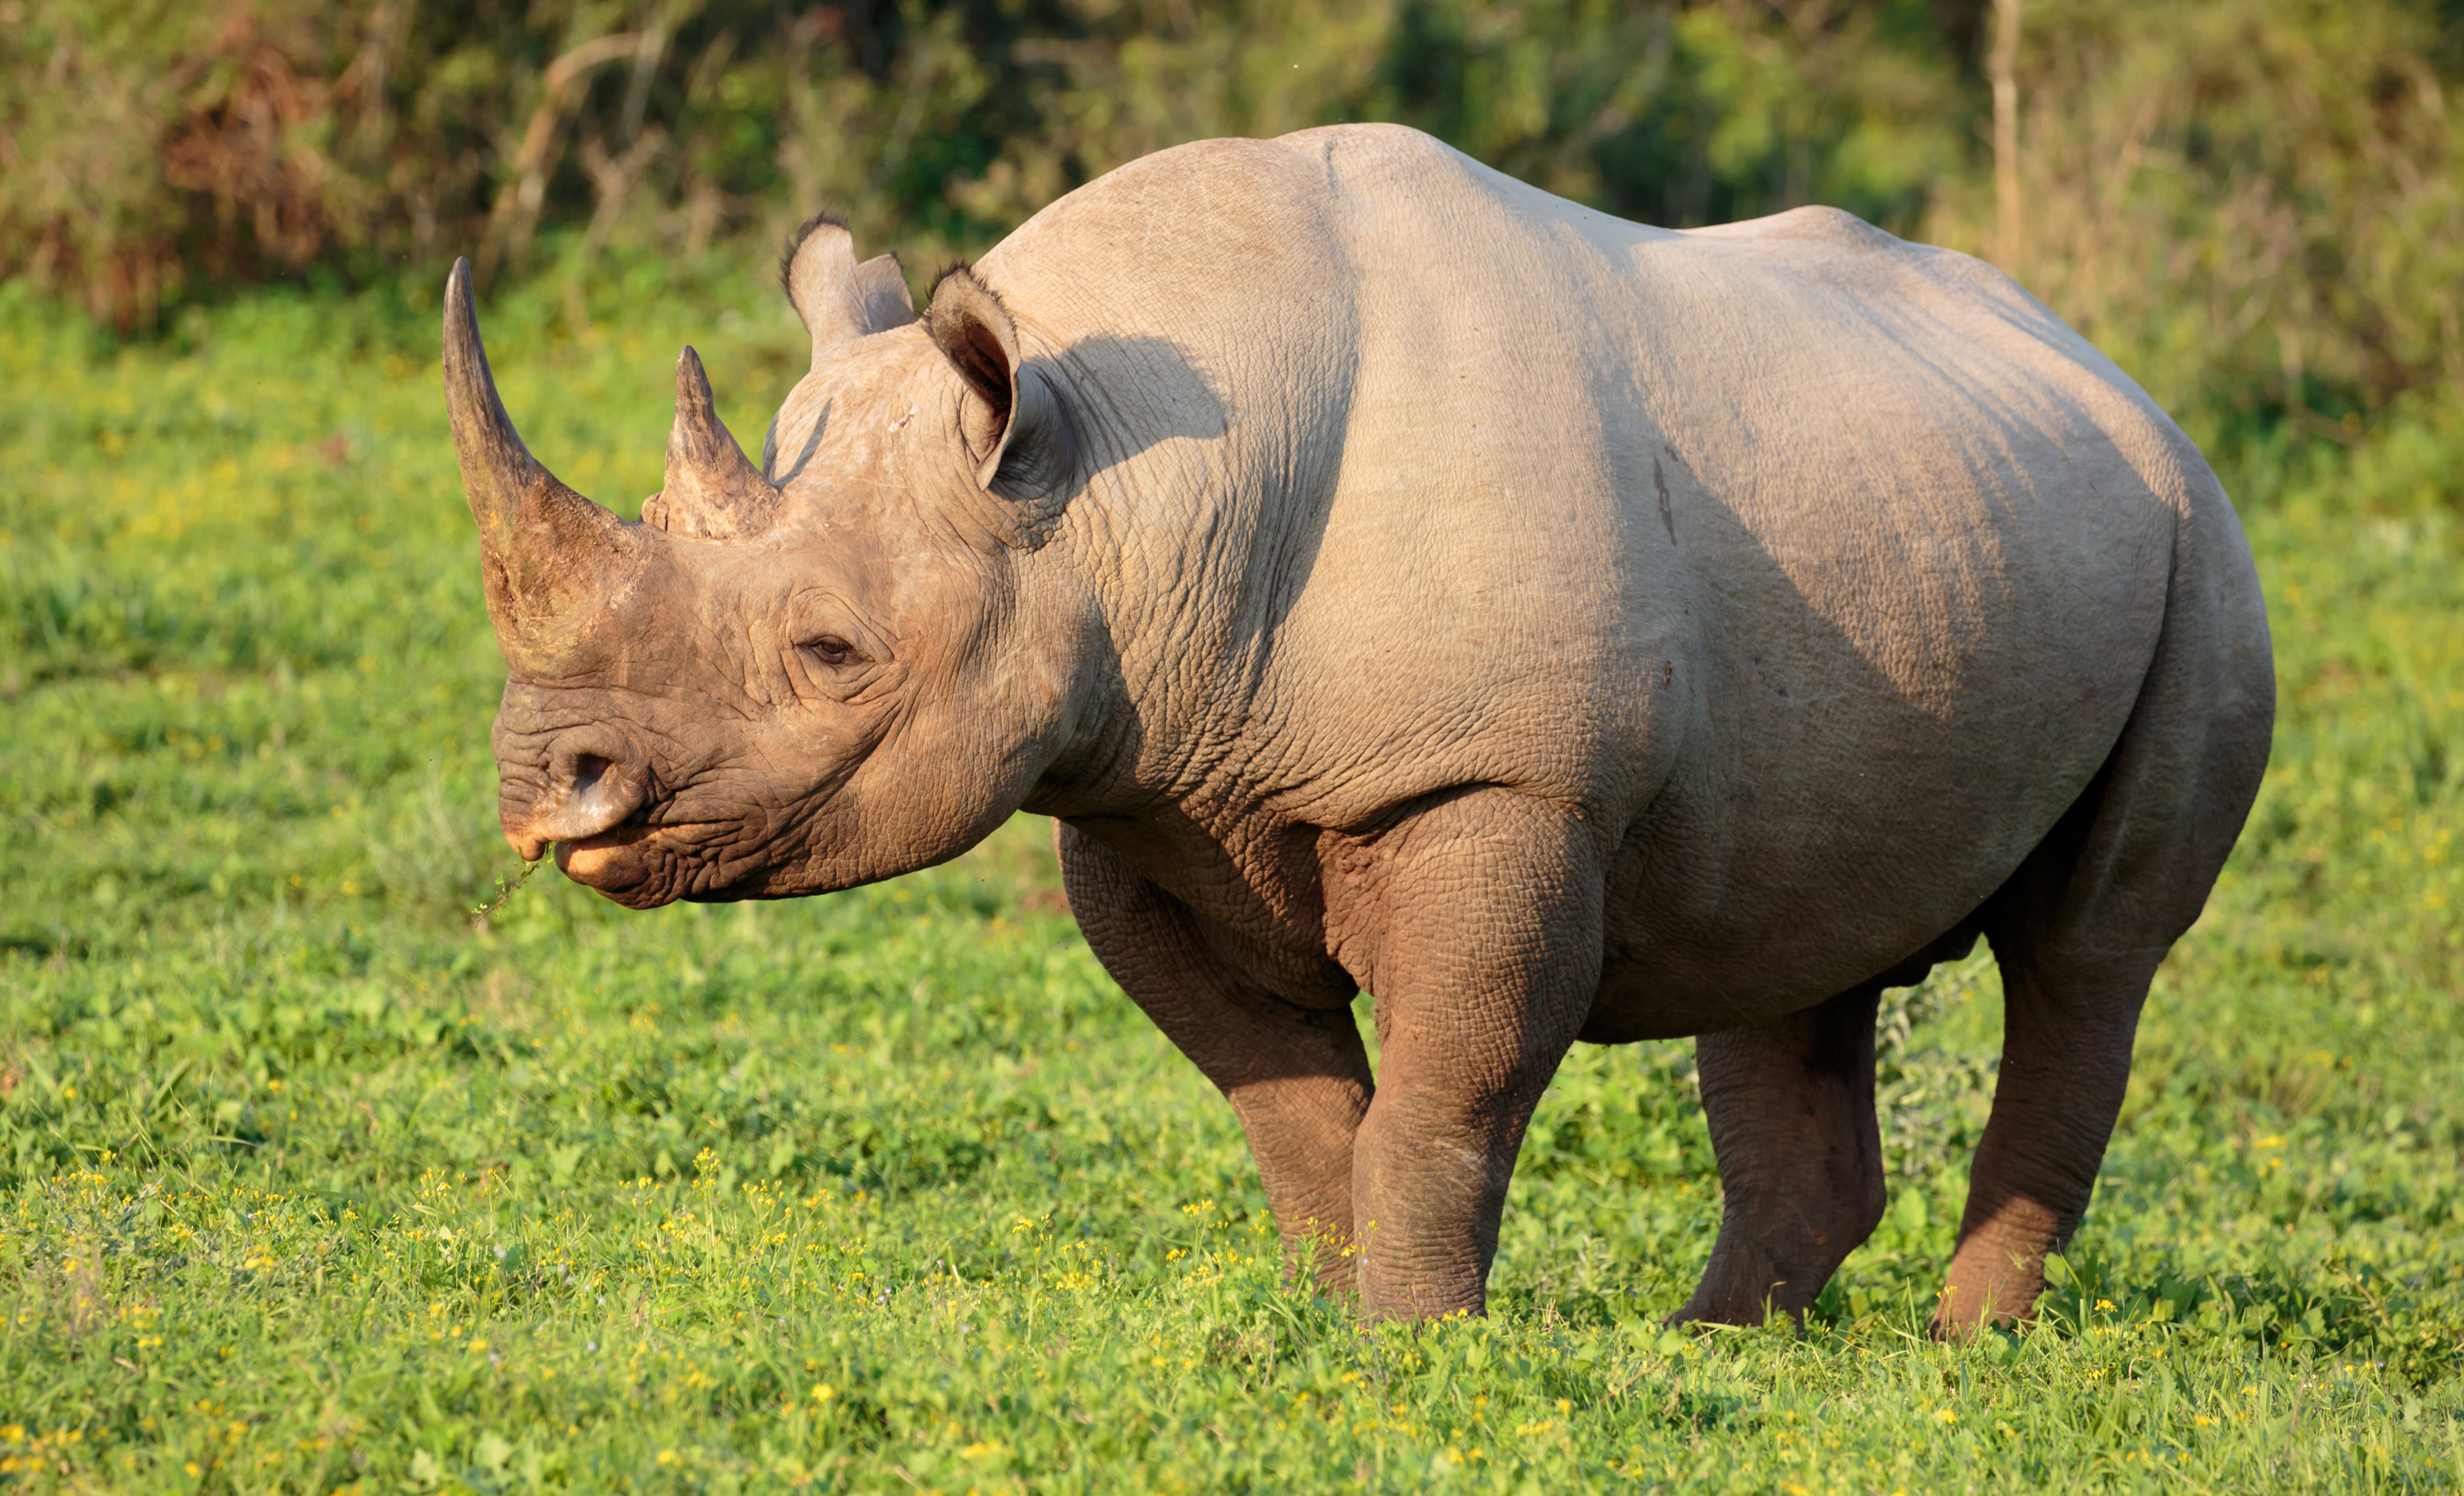 10 most endangered animals on Earth • Earth com